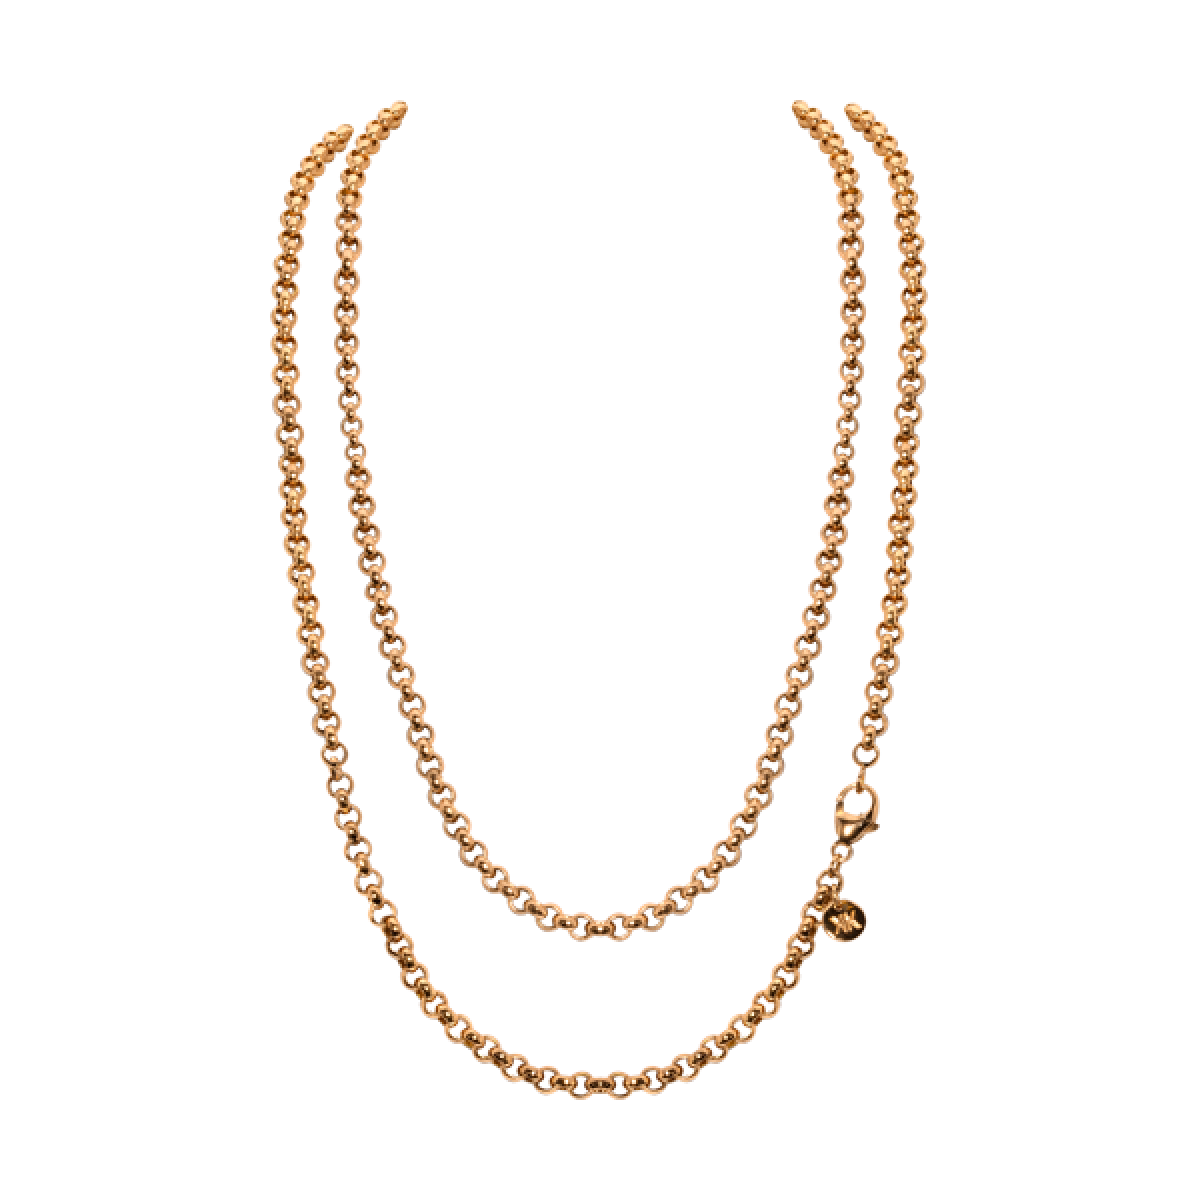 Chain PNG - 25227